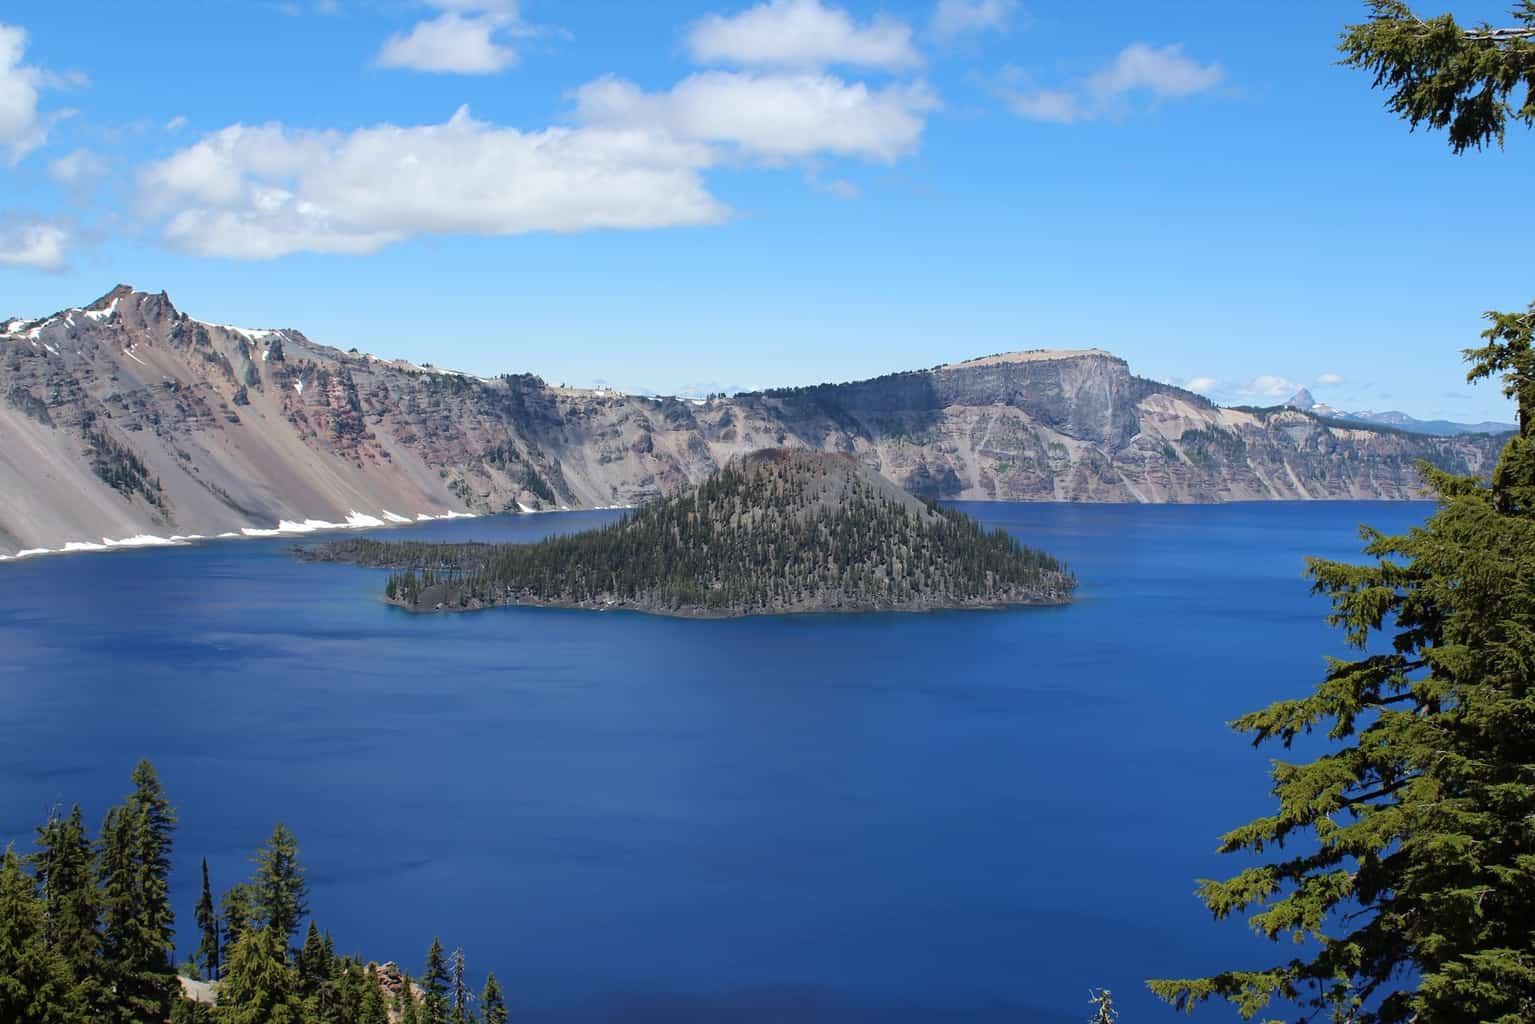 Scenic photo of Wizard Island in Crater Lake